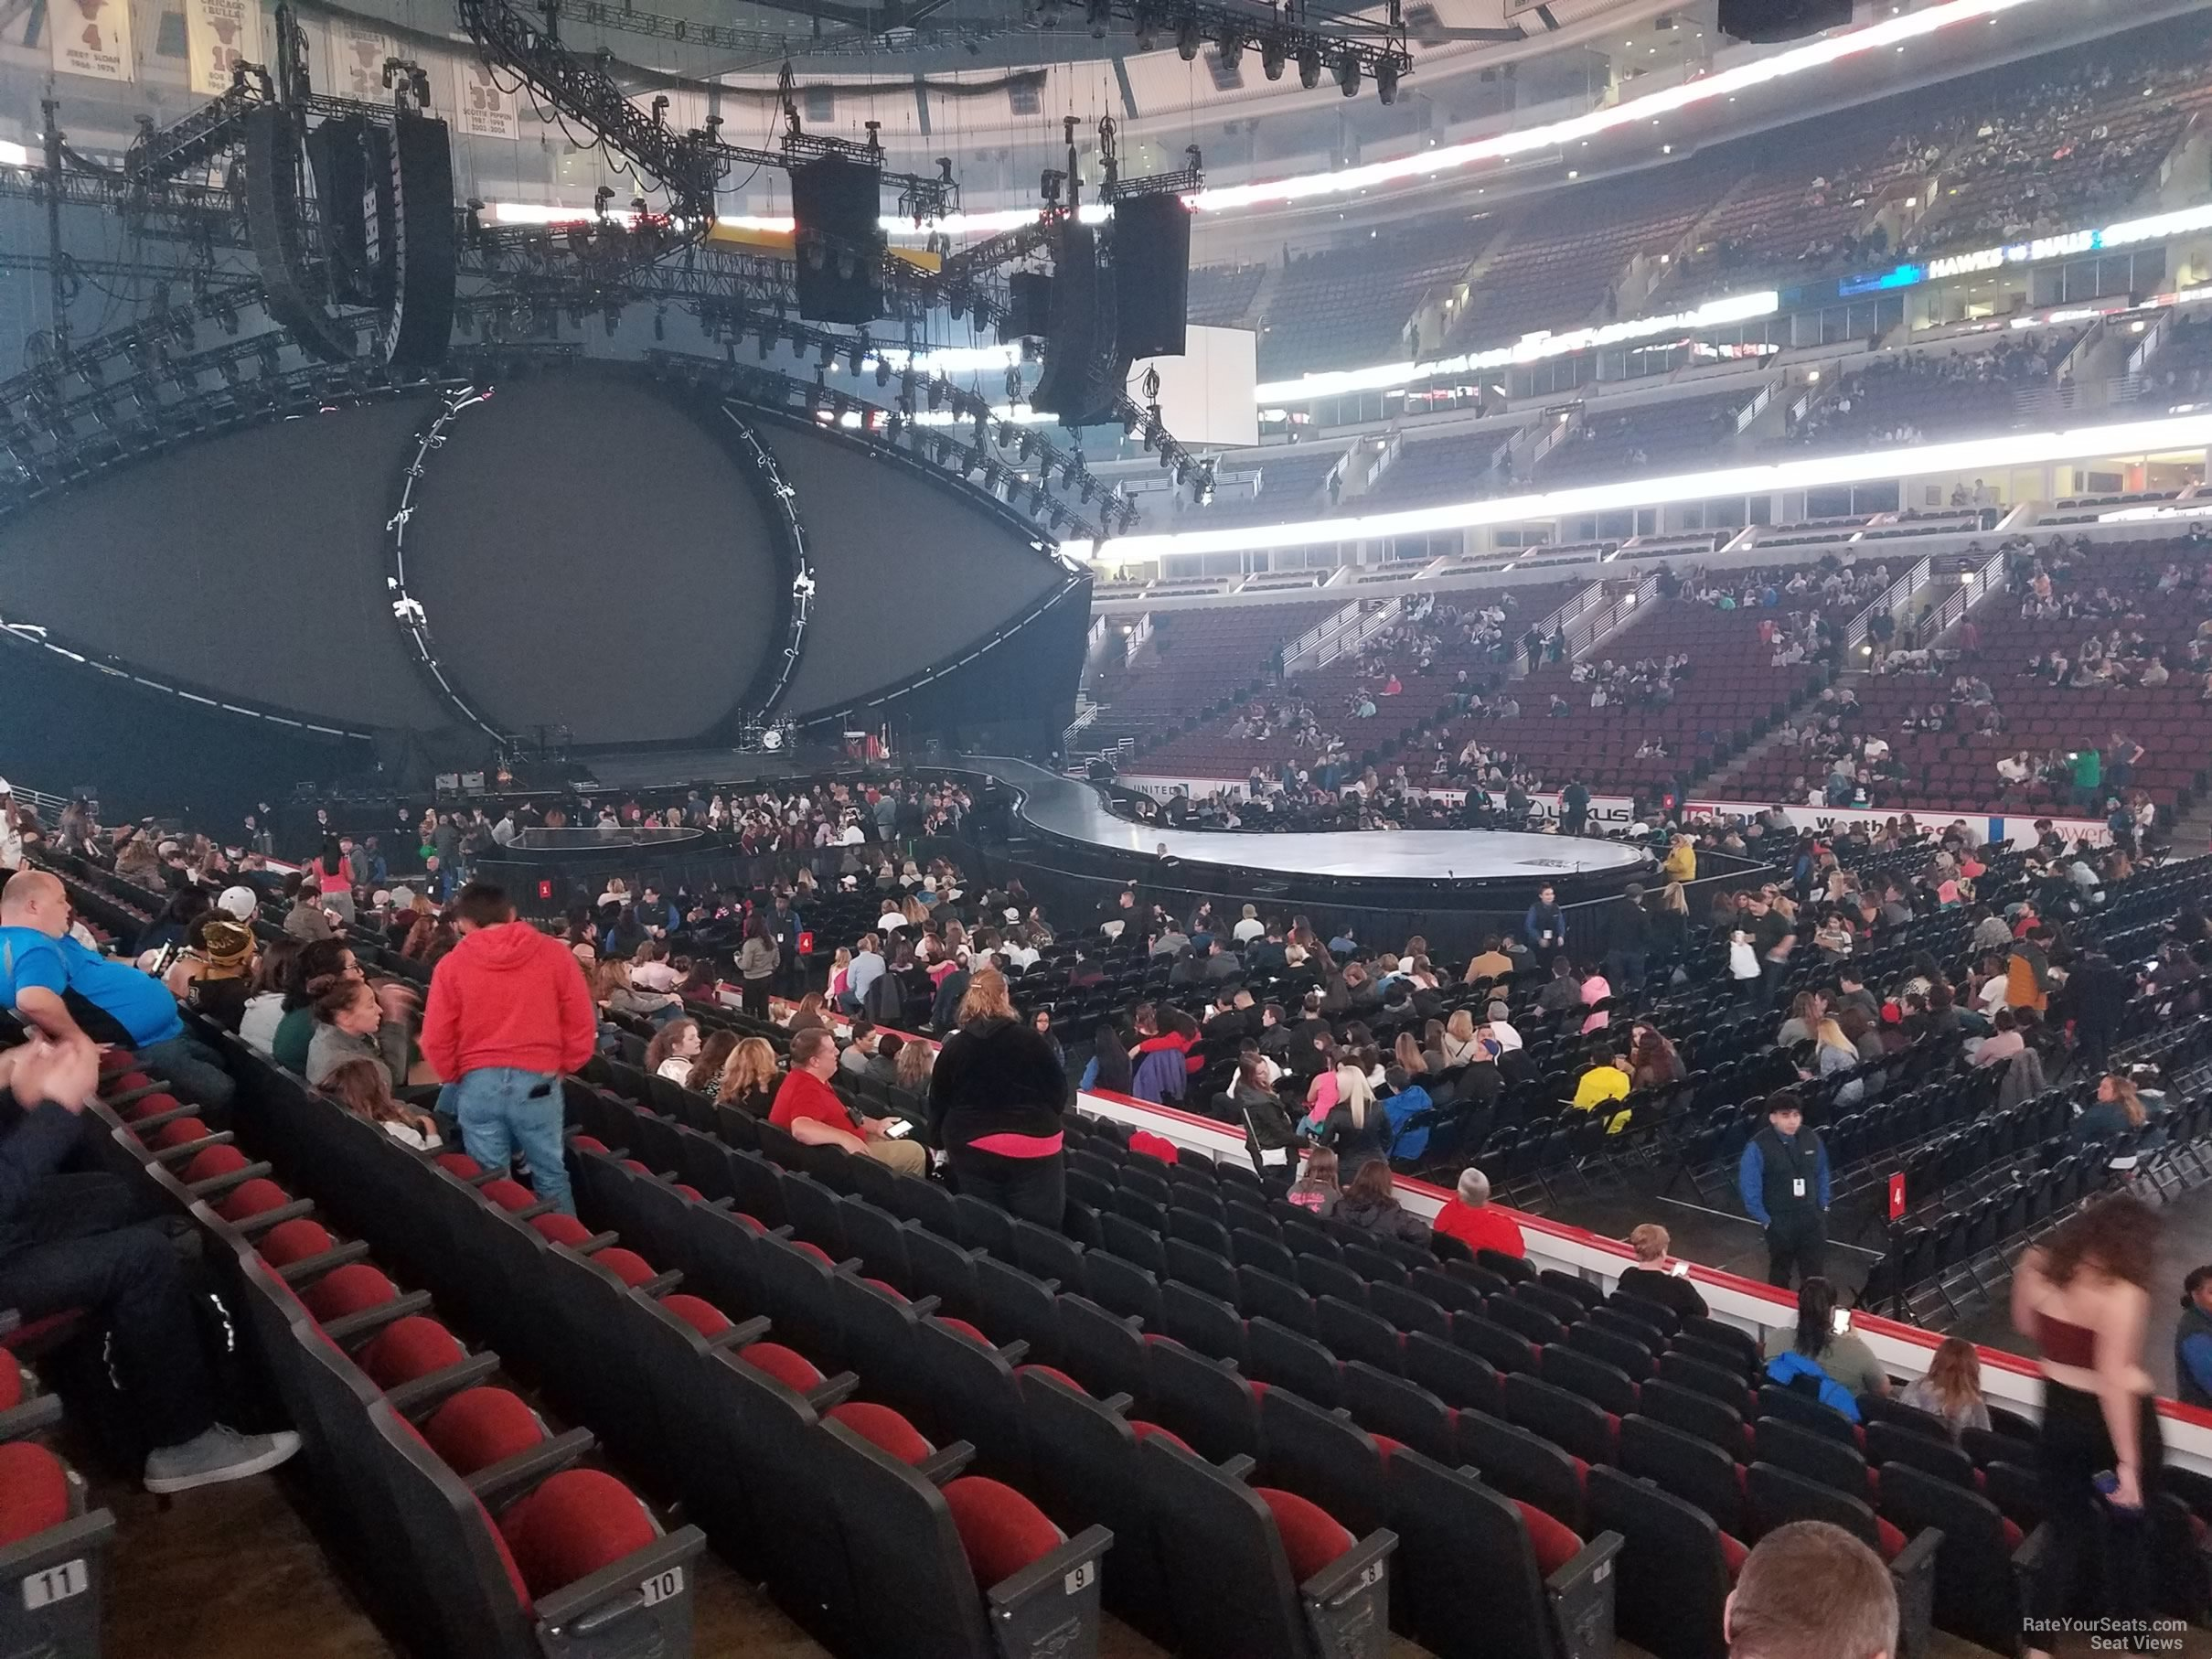 united center section 109 concert seating rateyourseats com